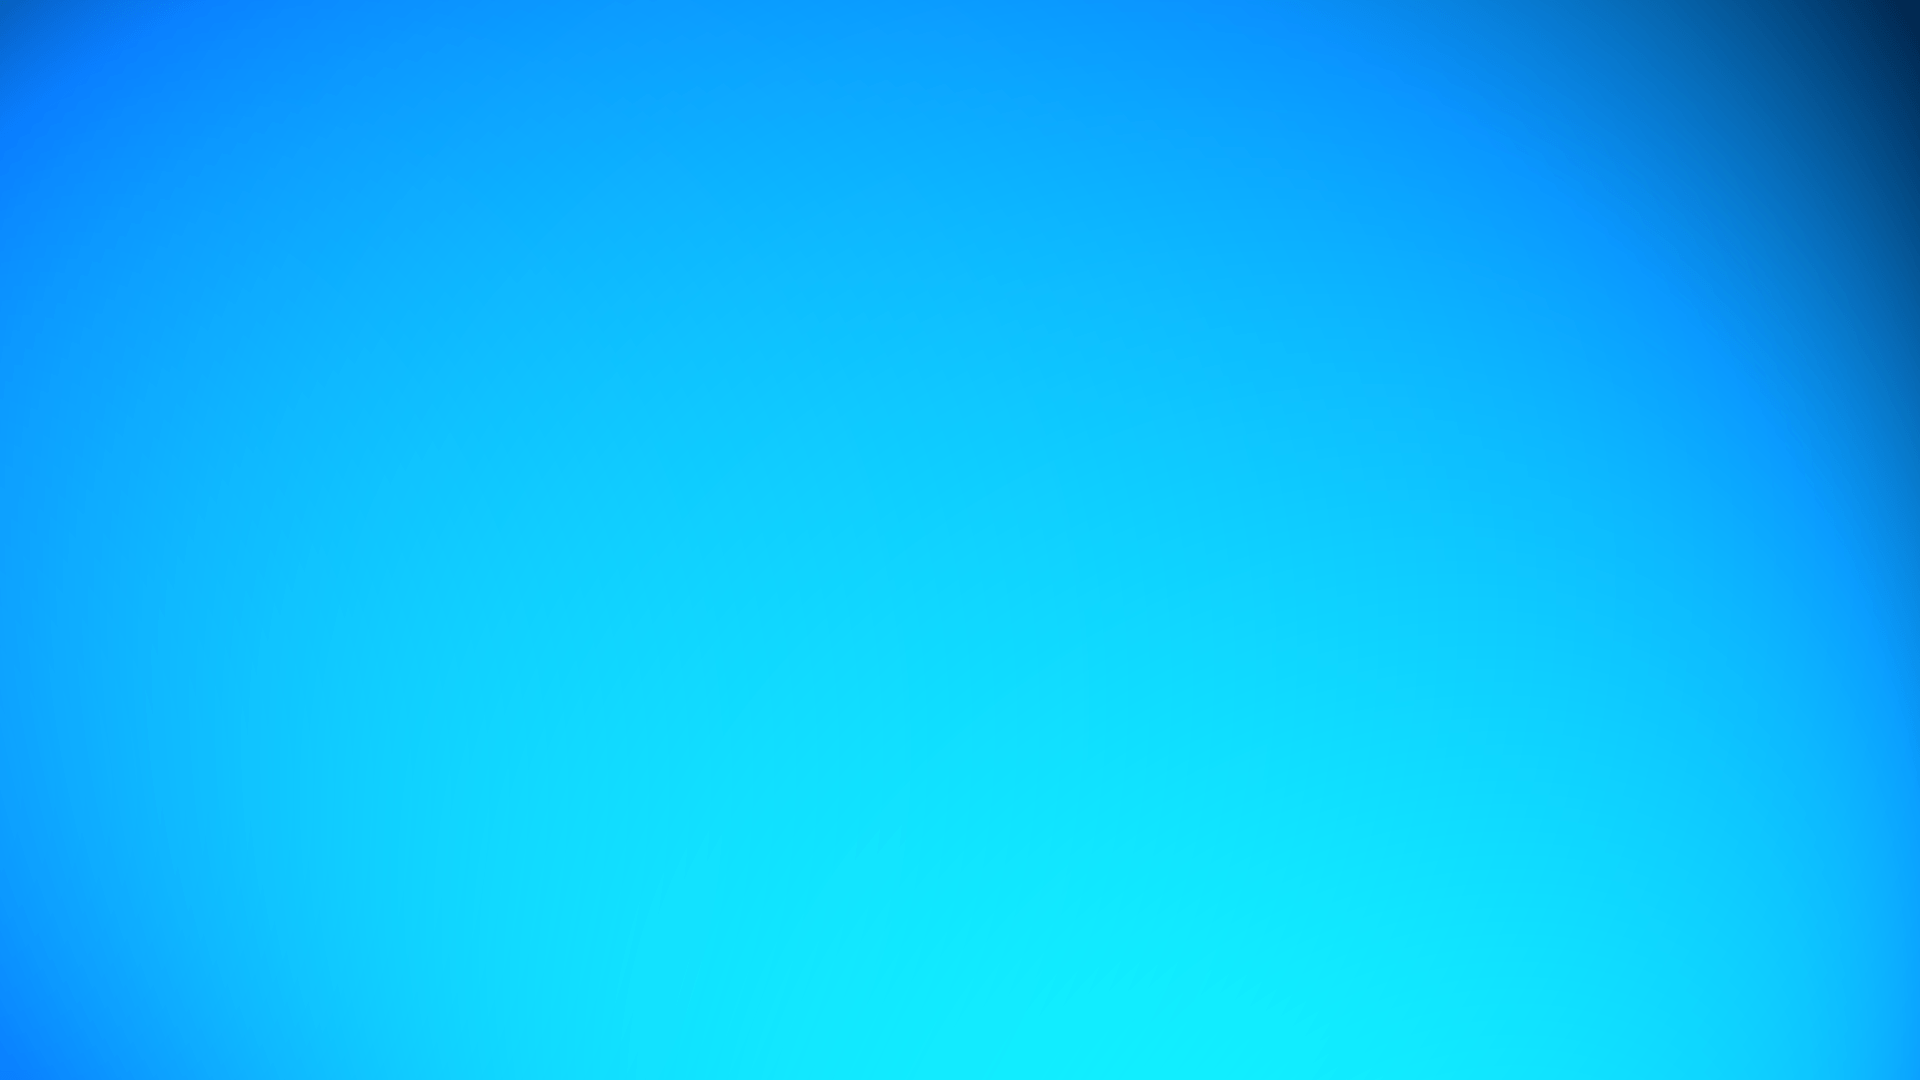 Blue Gradient Wallpapers 1920x1080